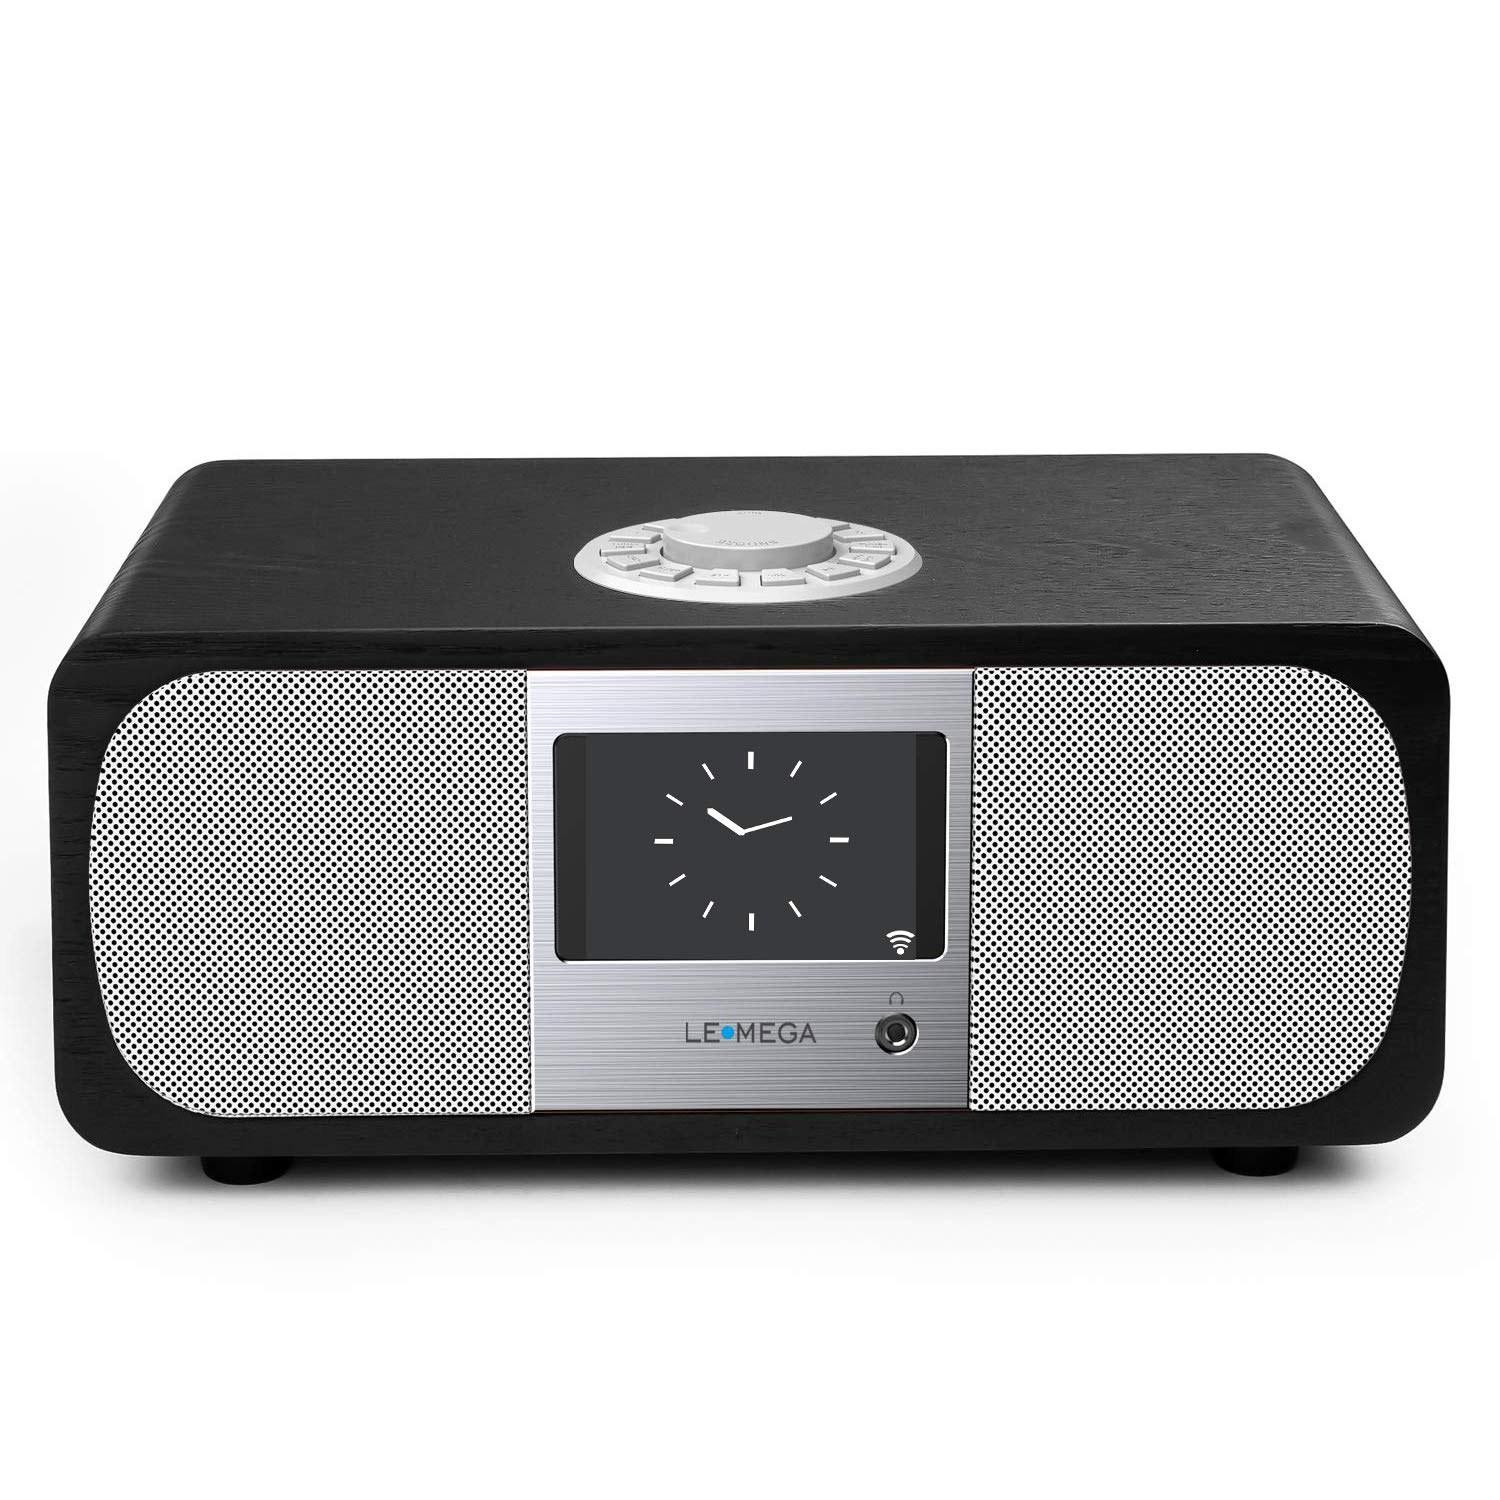 LEMEGA M3+ Smart Music System (2.1 Stereo) with Wi-Fi, Internet Radio, Spotify, Bluetooth, DLNA, FM Radio, Clock, Alarms, Presets, and Wireless App Control. (Black Oak)